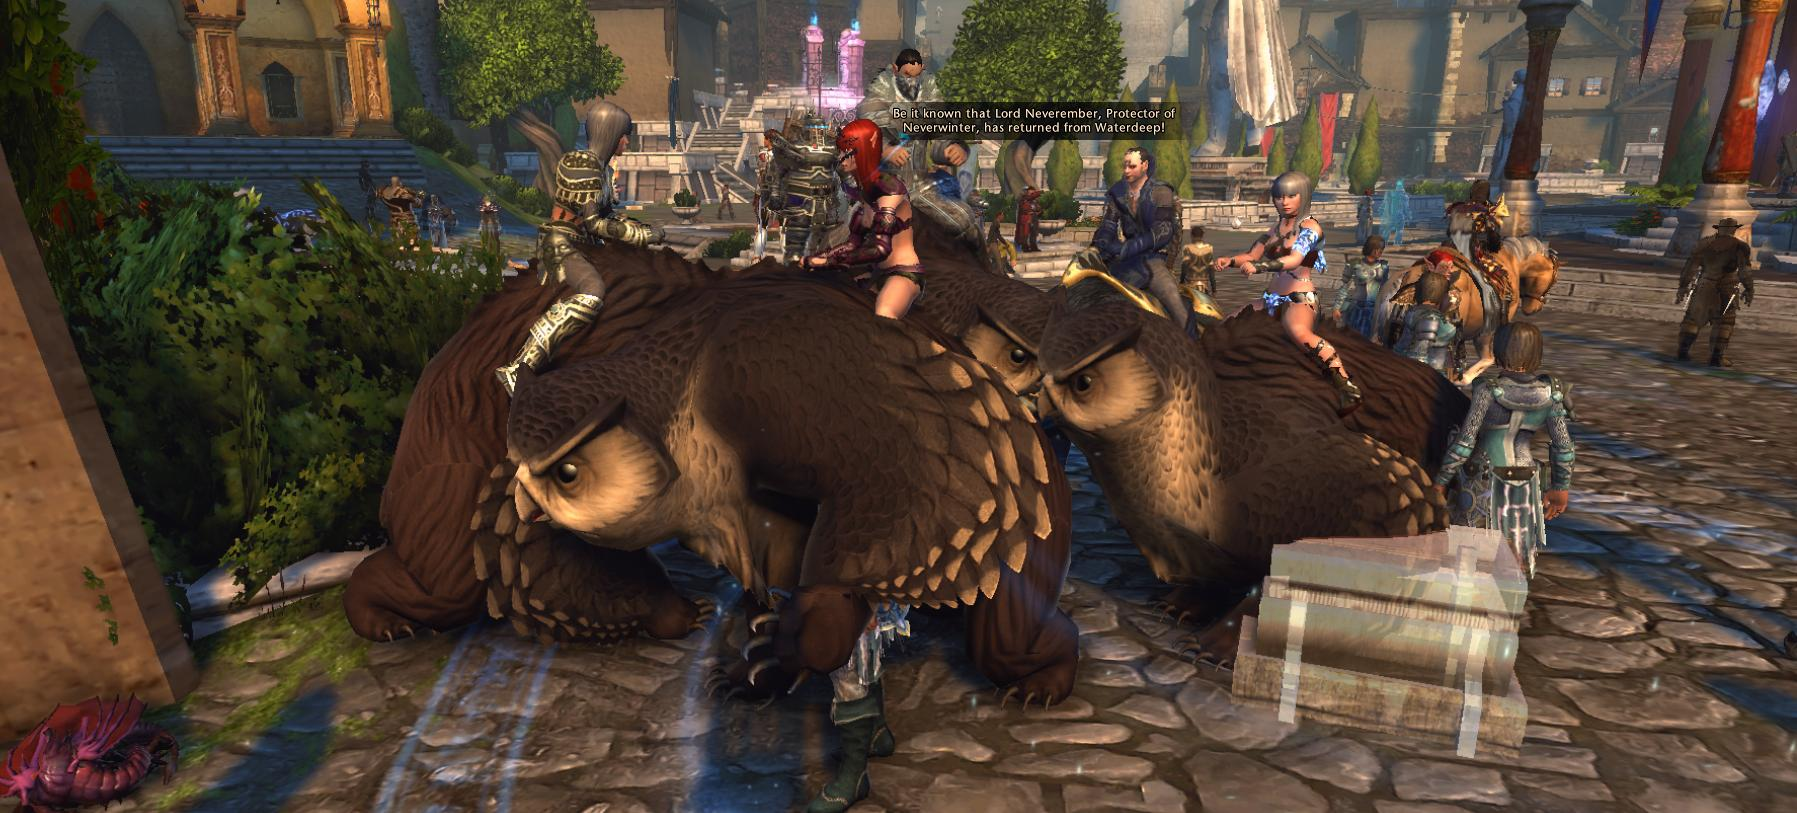 owl bear Orsi gufo a frotte, screenshot Videogame: Neverwinter Online (2013-06) © Cryptic Studios, Wizards of the Coast & Hasbro